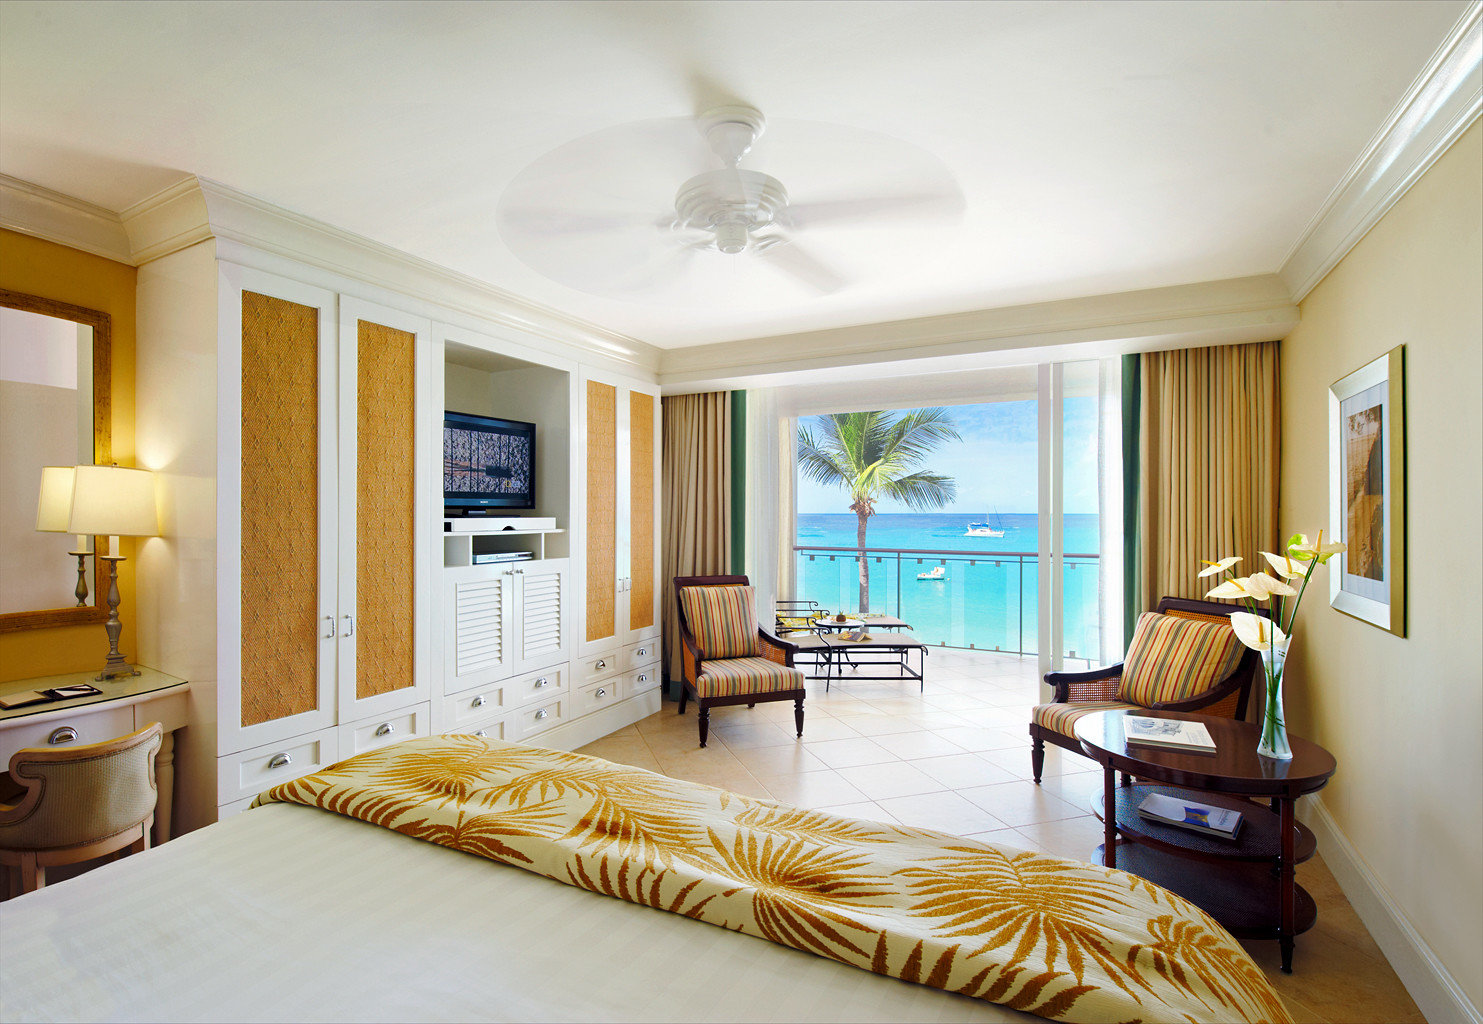 Balcony Bedroom Ocean Scenic views Suite property living room home cottage condominium hardwood Villa flat